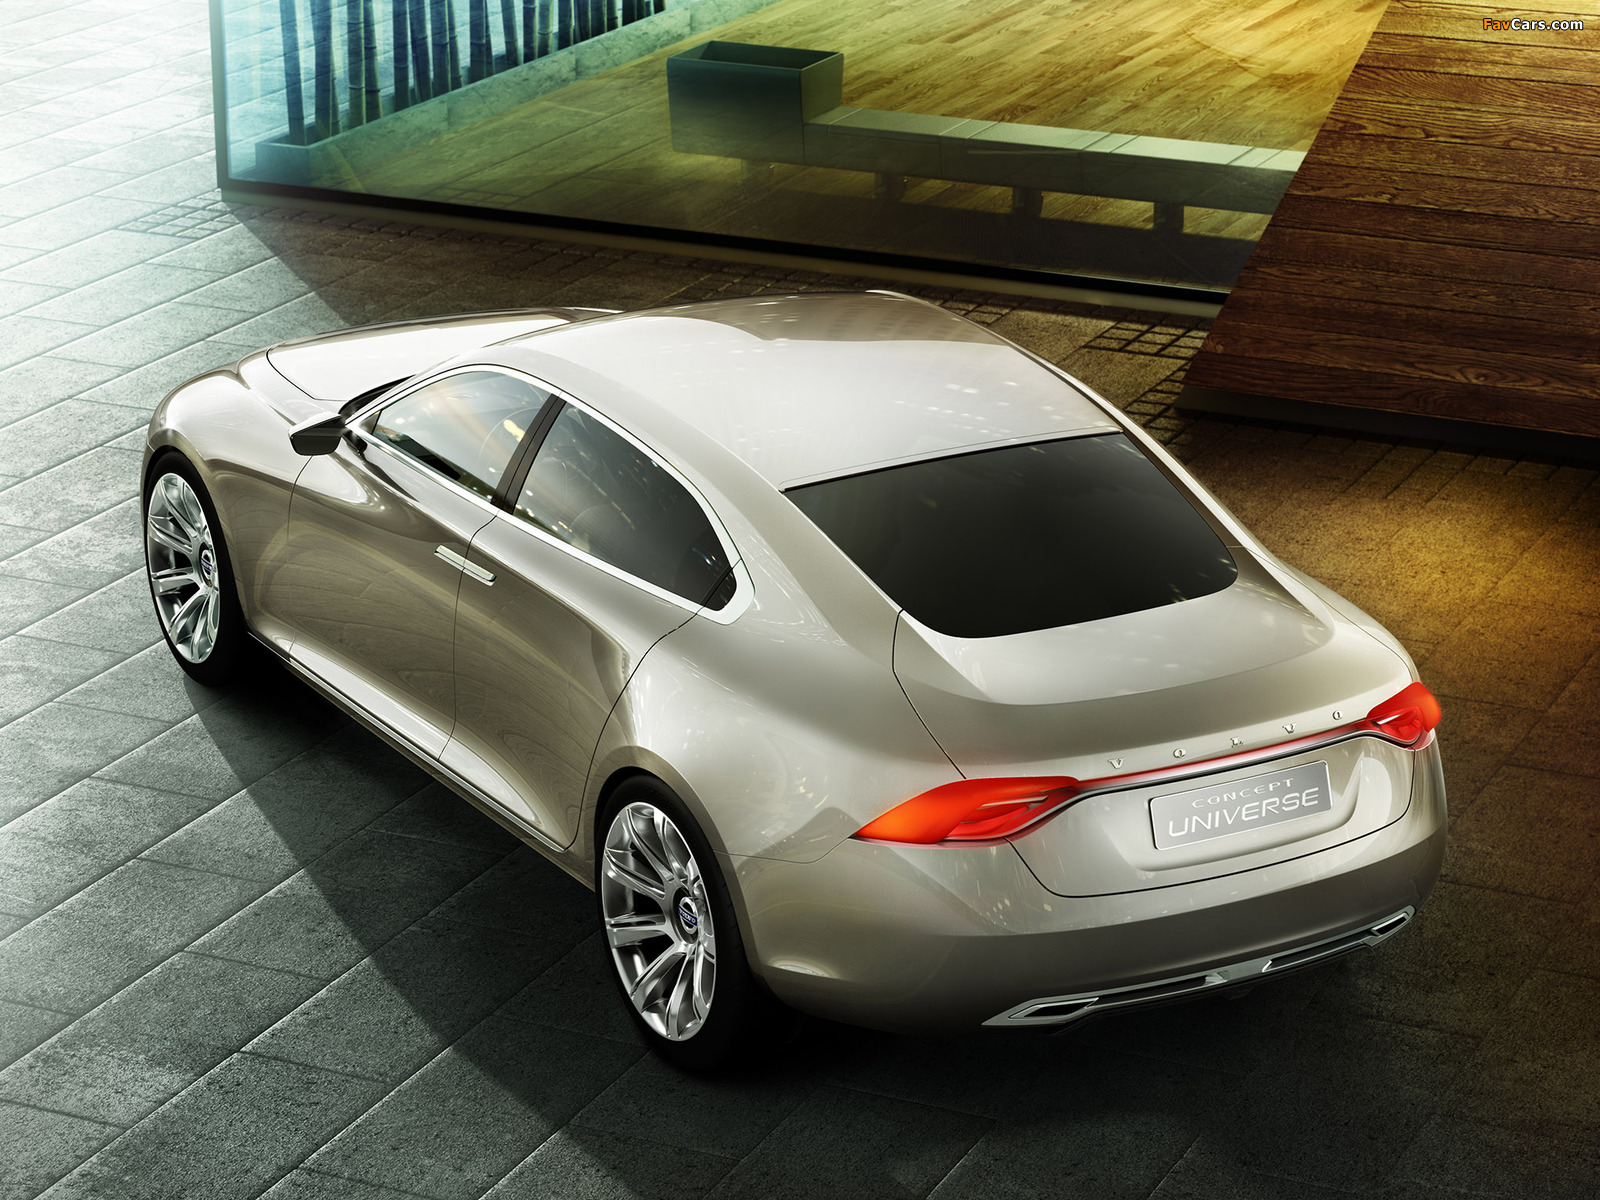 Images of Volvo Universe Concept 2011 (1600 x 1200)